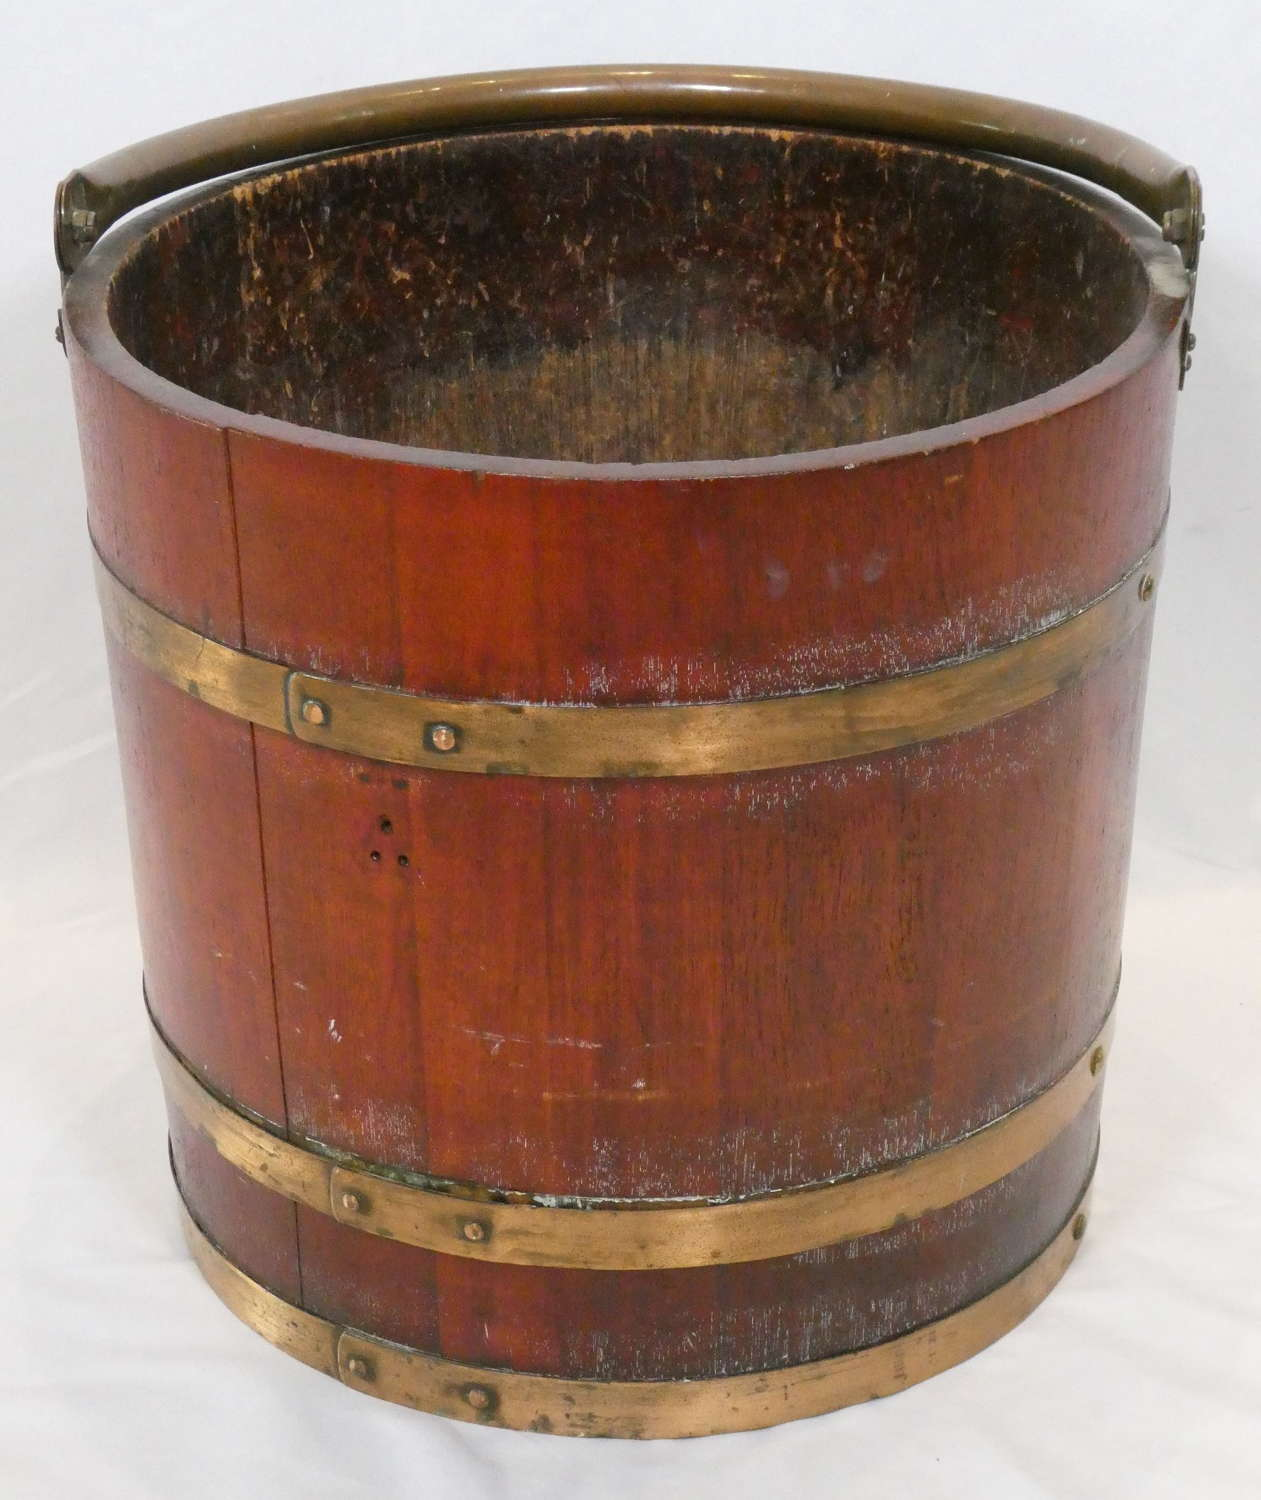 Large Early 20th Century Wooden Bucket or Log Bin